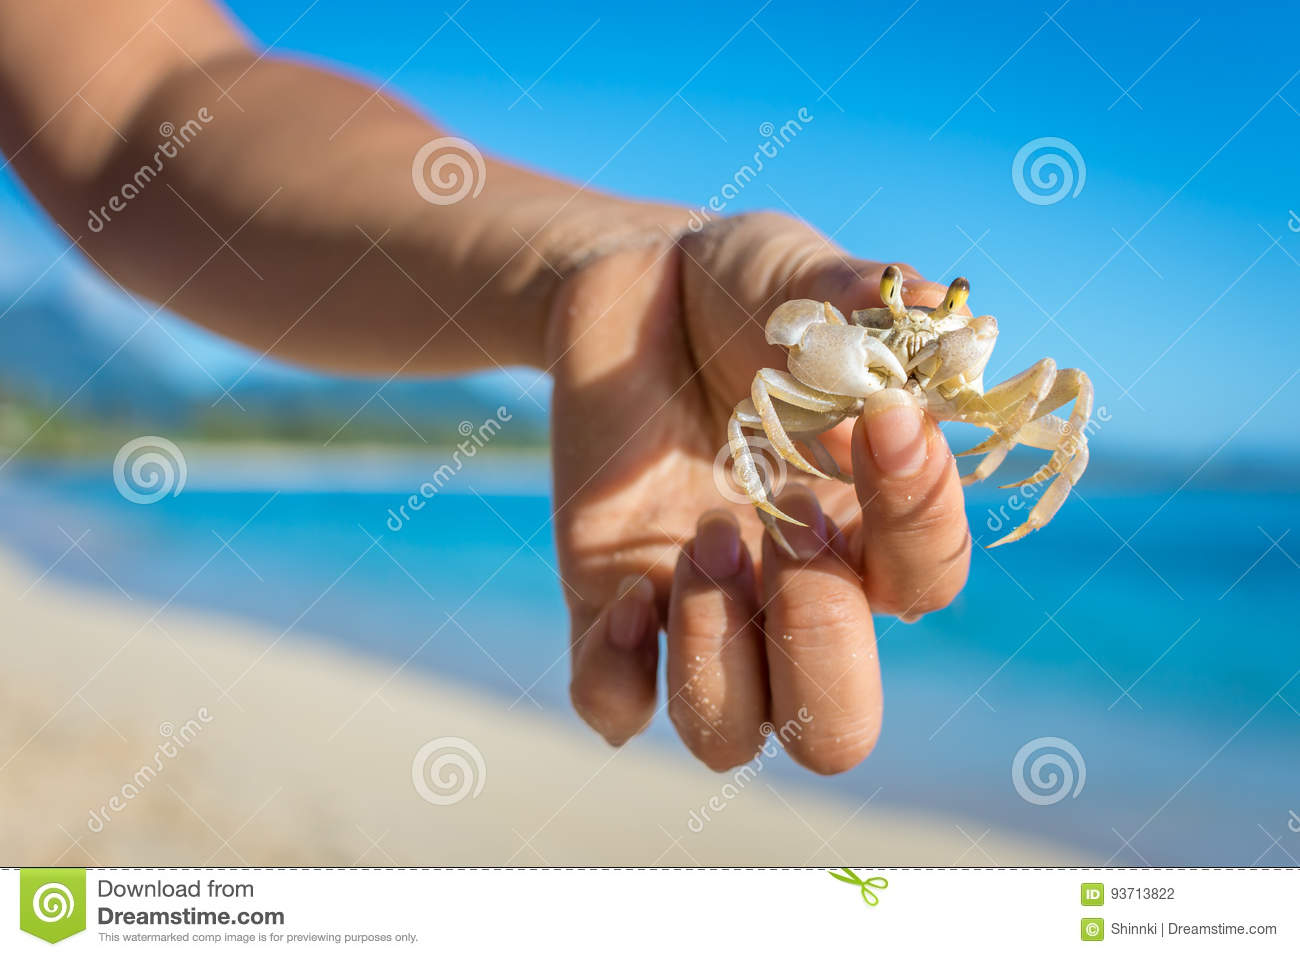 Ghost Crab With A Funny Face Stock Photo - Image of beach